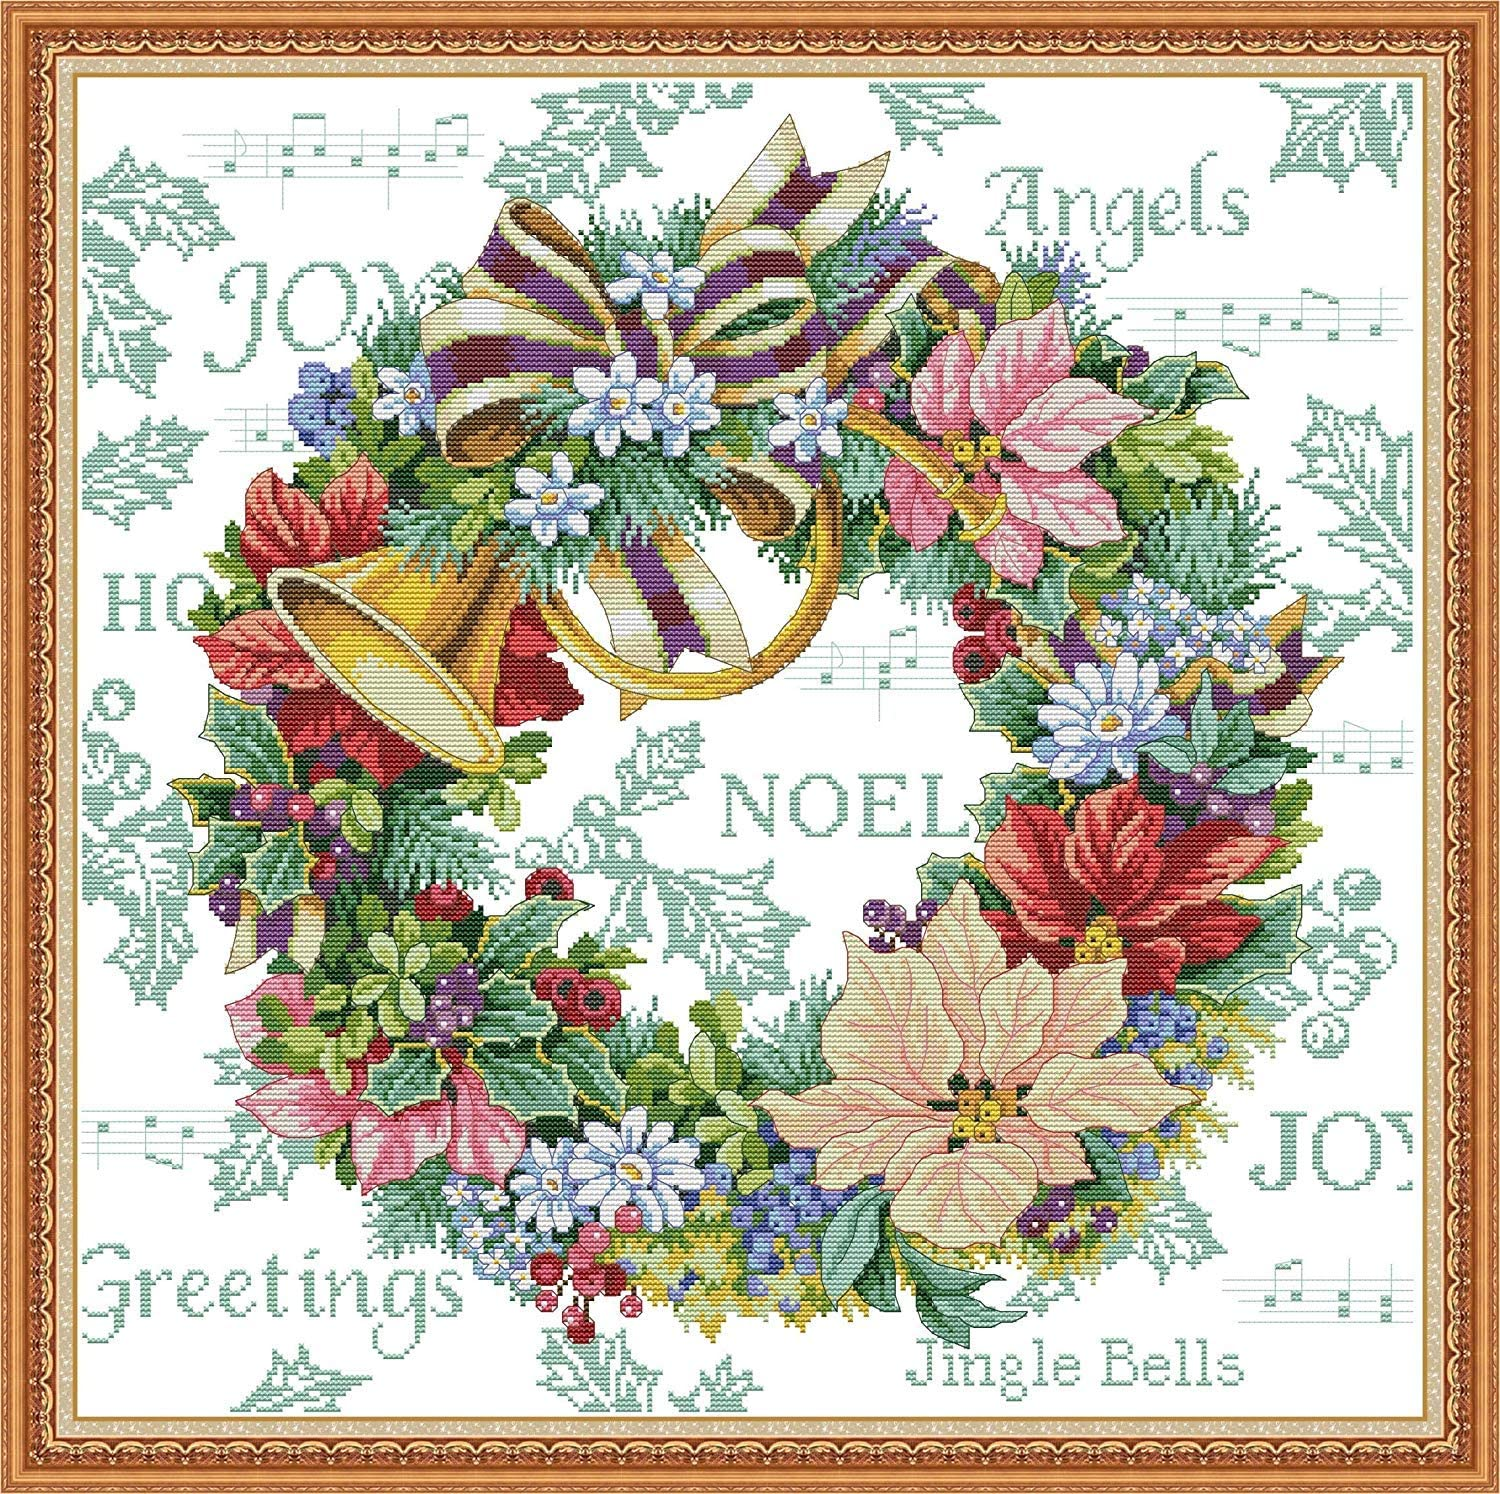 Christmas Gift Printed Cross Stitch Kits 11CT 13X17 inch 100/% Cotton DIY Embroidery Starter Kits Easy Patterns Embroidery for Girls Crafts DMC Stamped Cross-Stitch Supplies Needlework Animal Series